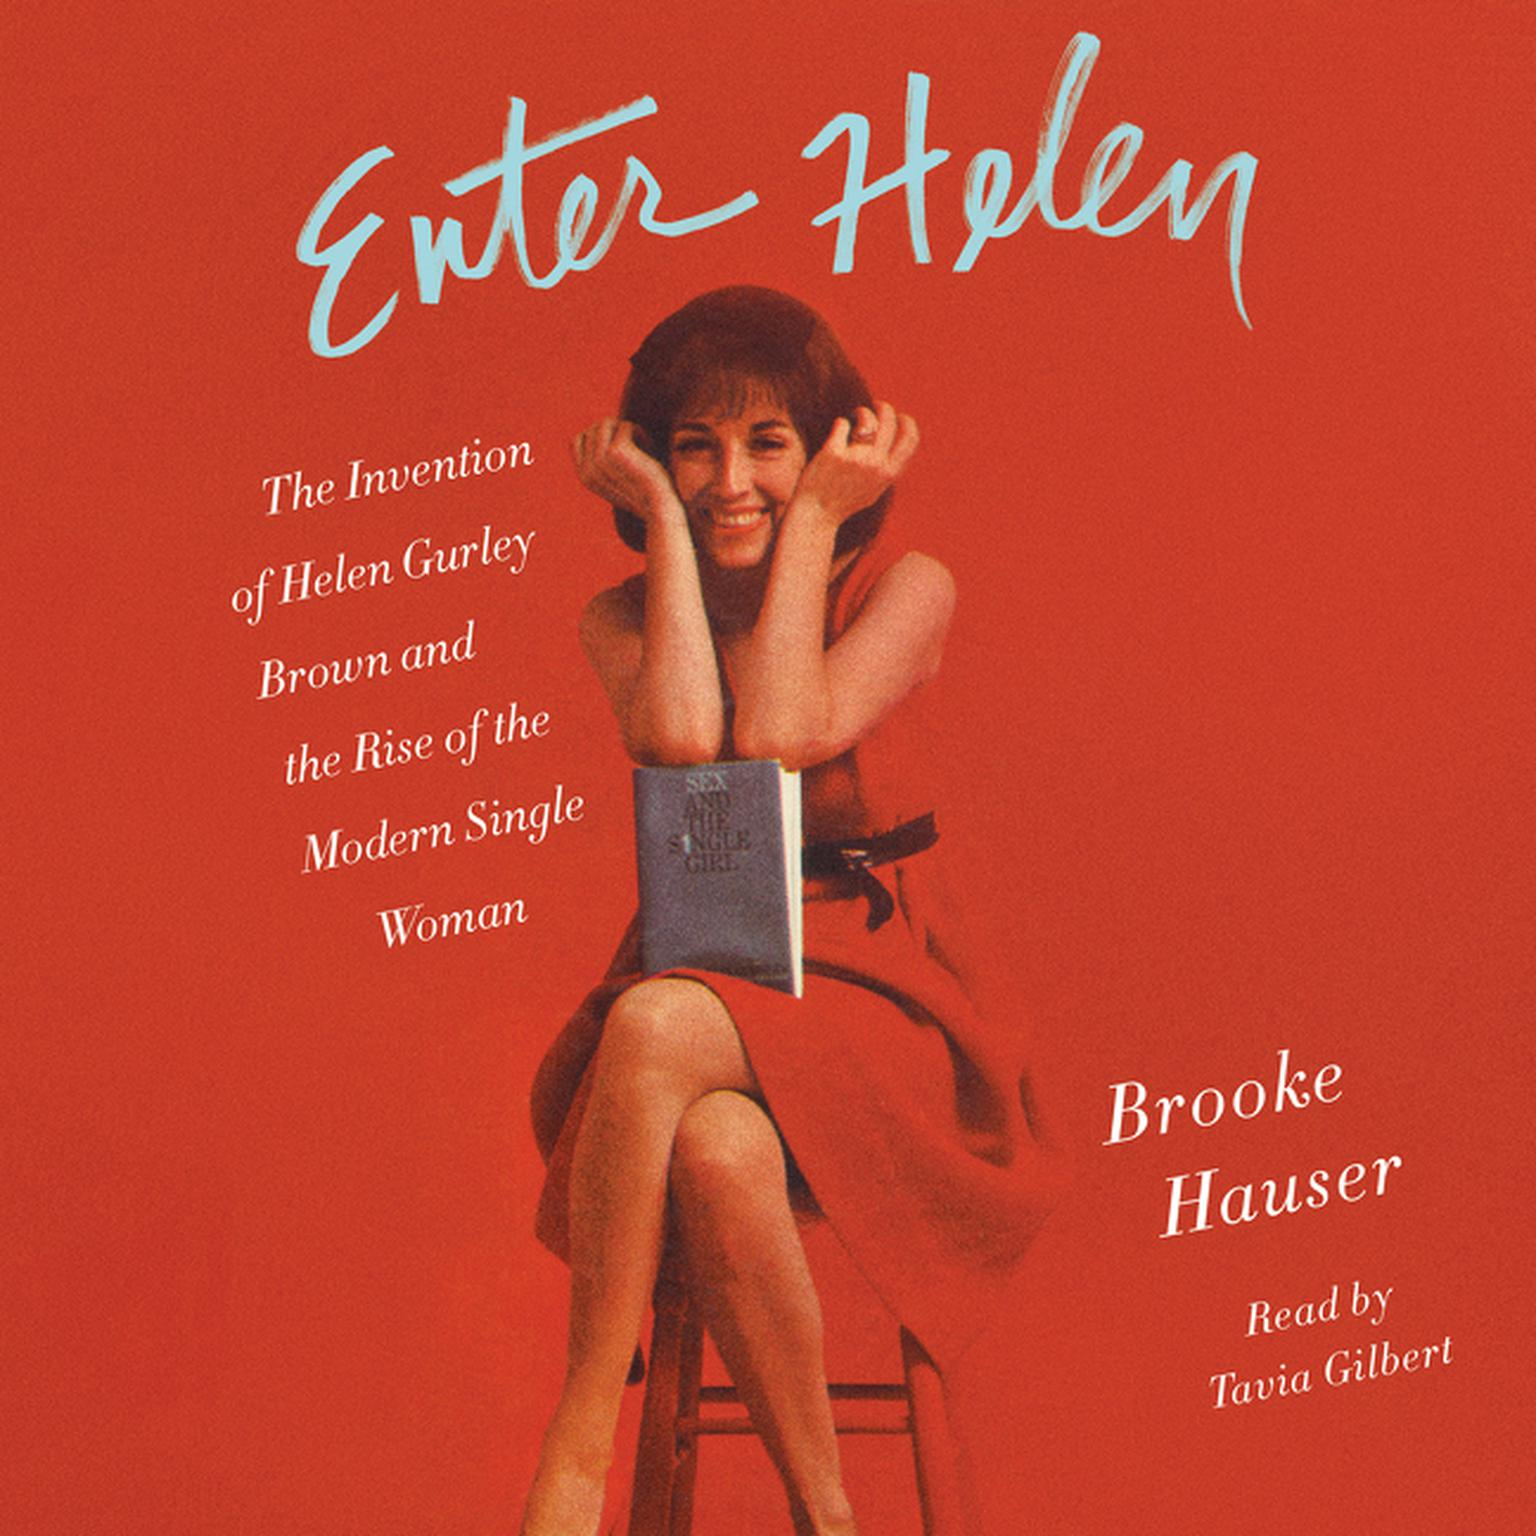 Printable Enter Helen: The Invention of Helen Gurley Brown and the Rise of the Modern Single Woman Audiobook Cover Art